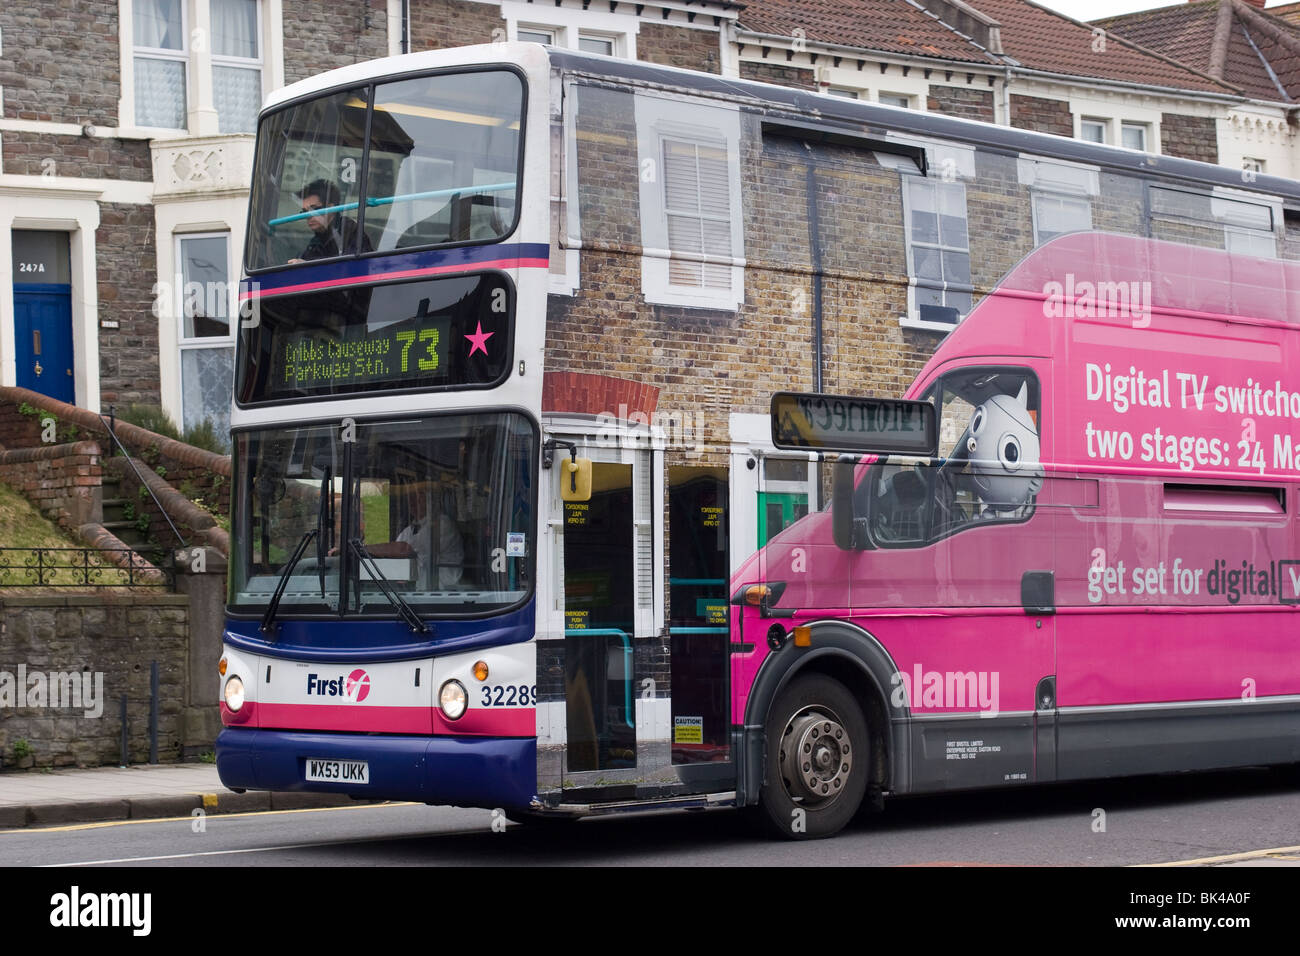 A bus adorned with an advert about digital TV switchover.  Gloucester Road, Bristol, England. - Stock Image